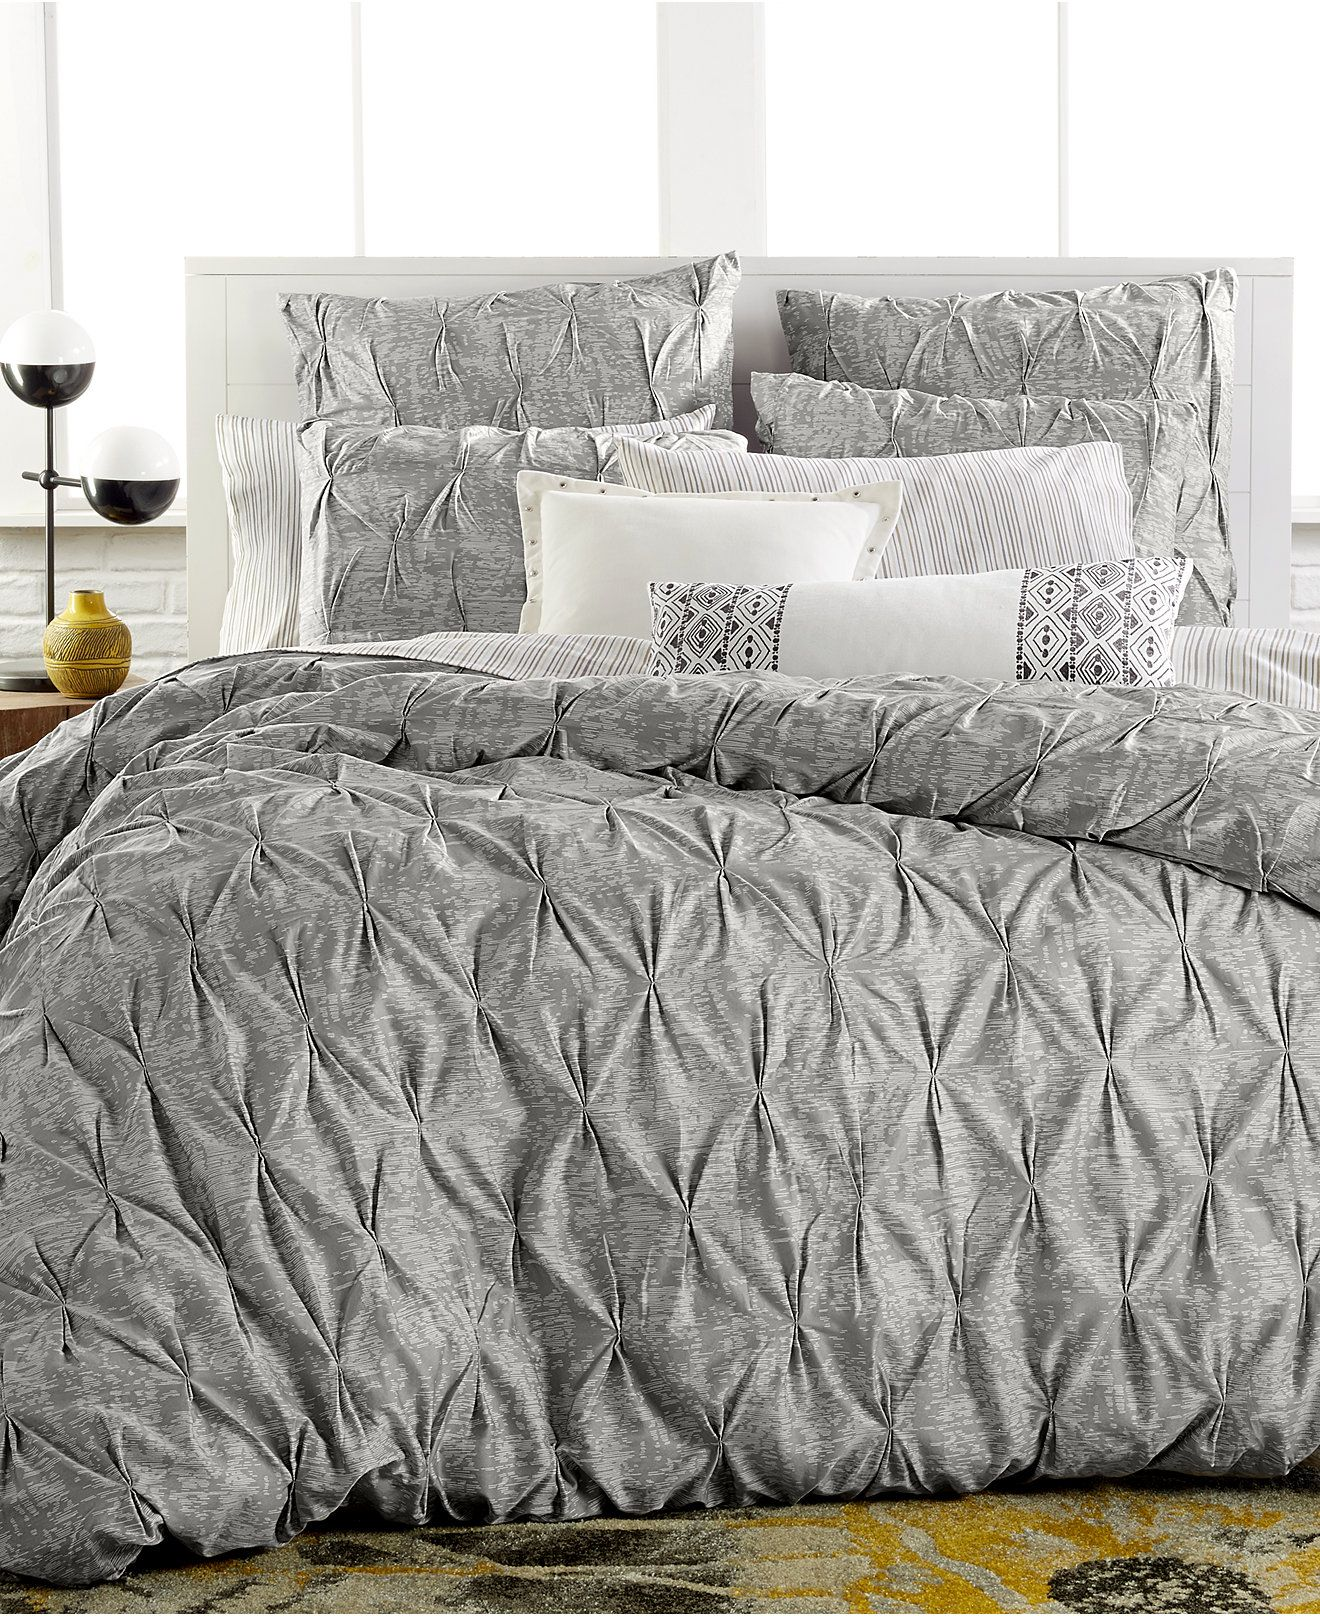 bar iii diamond pleat full/queen duvet cover - bedding collections